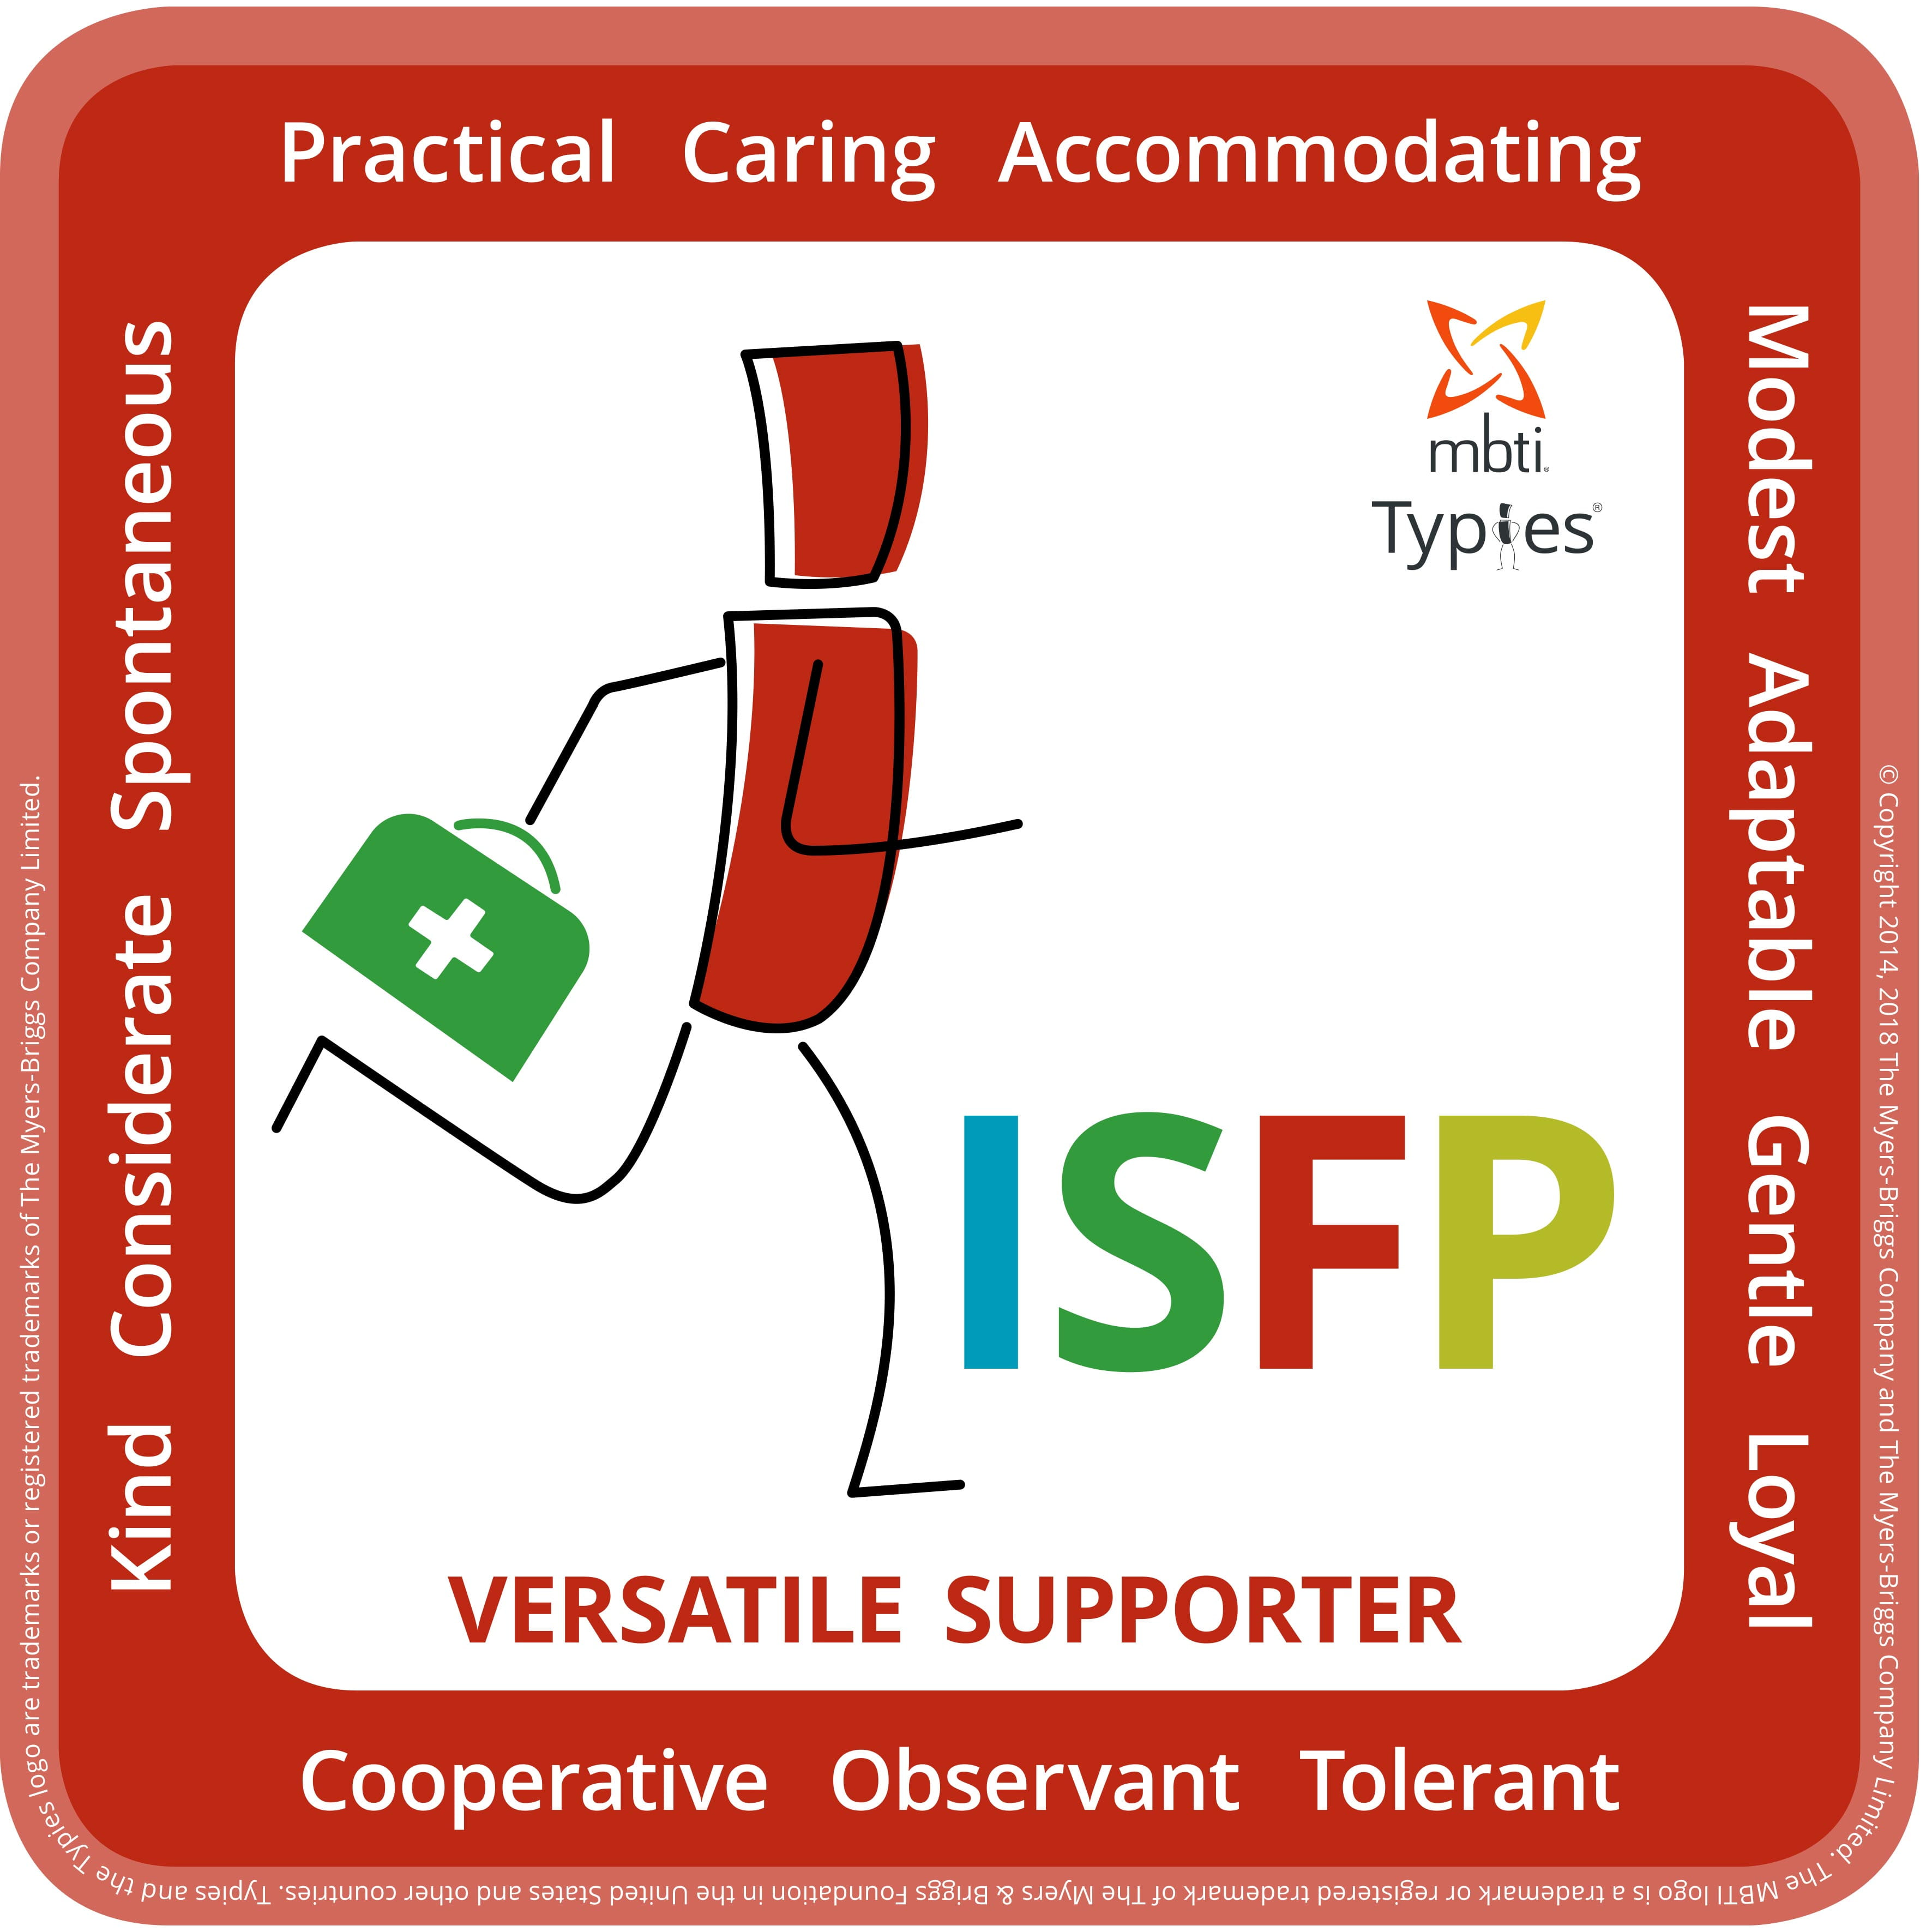 Typical characteristics of an ISFP